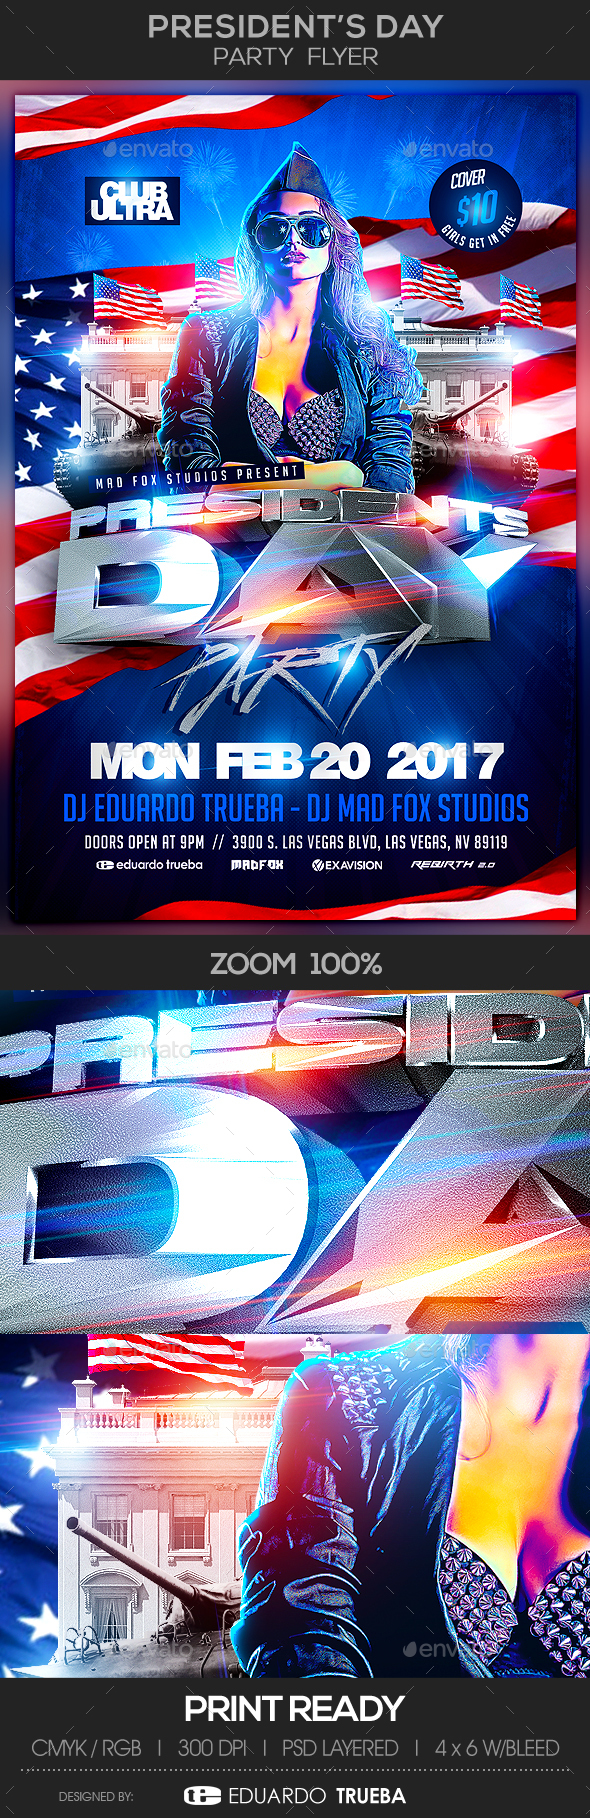 President's Day Party Flyer - Events Flyers